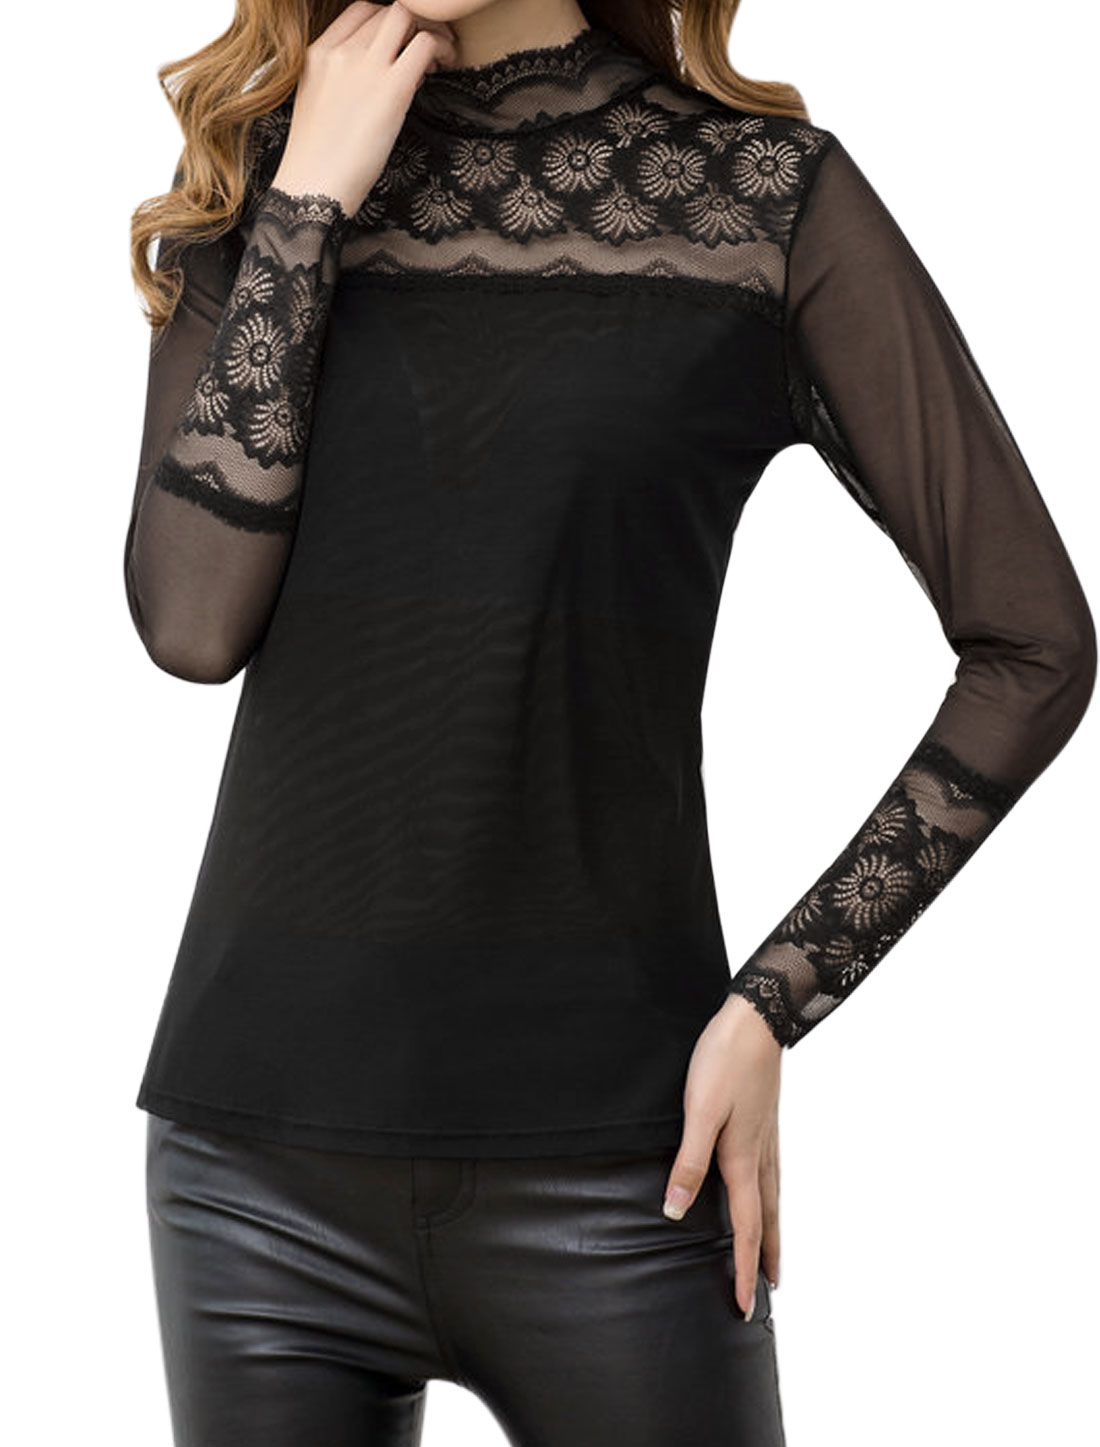 Lady Long Sleeves Lace Panel See Through Yoke Slim Fit Mesh Shirt Black XS